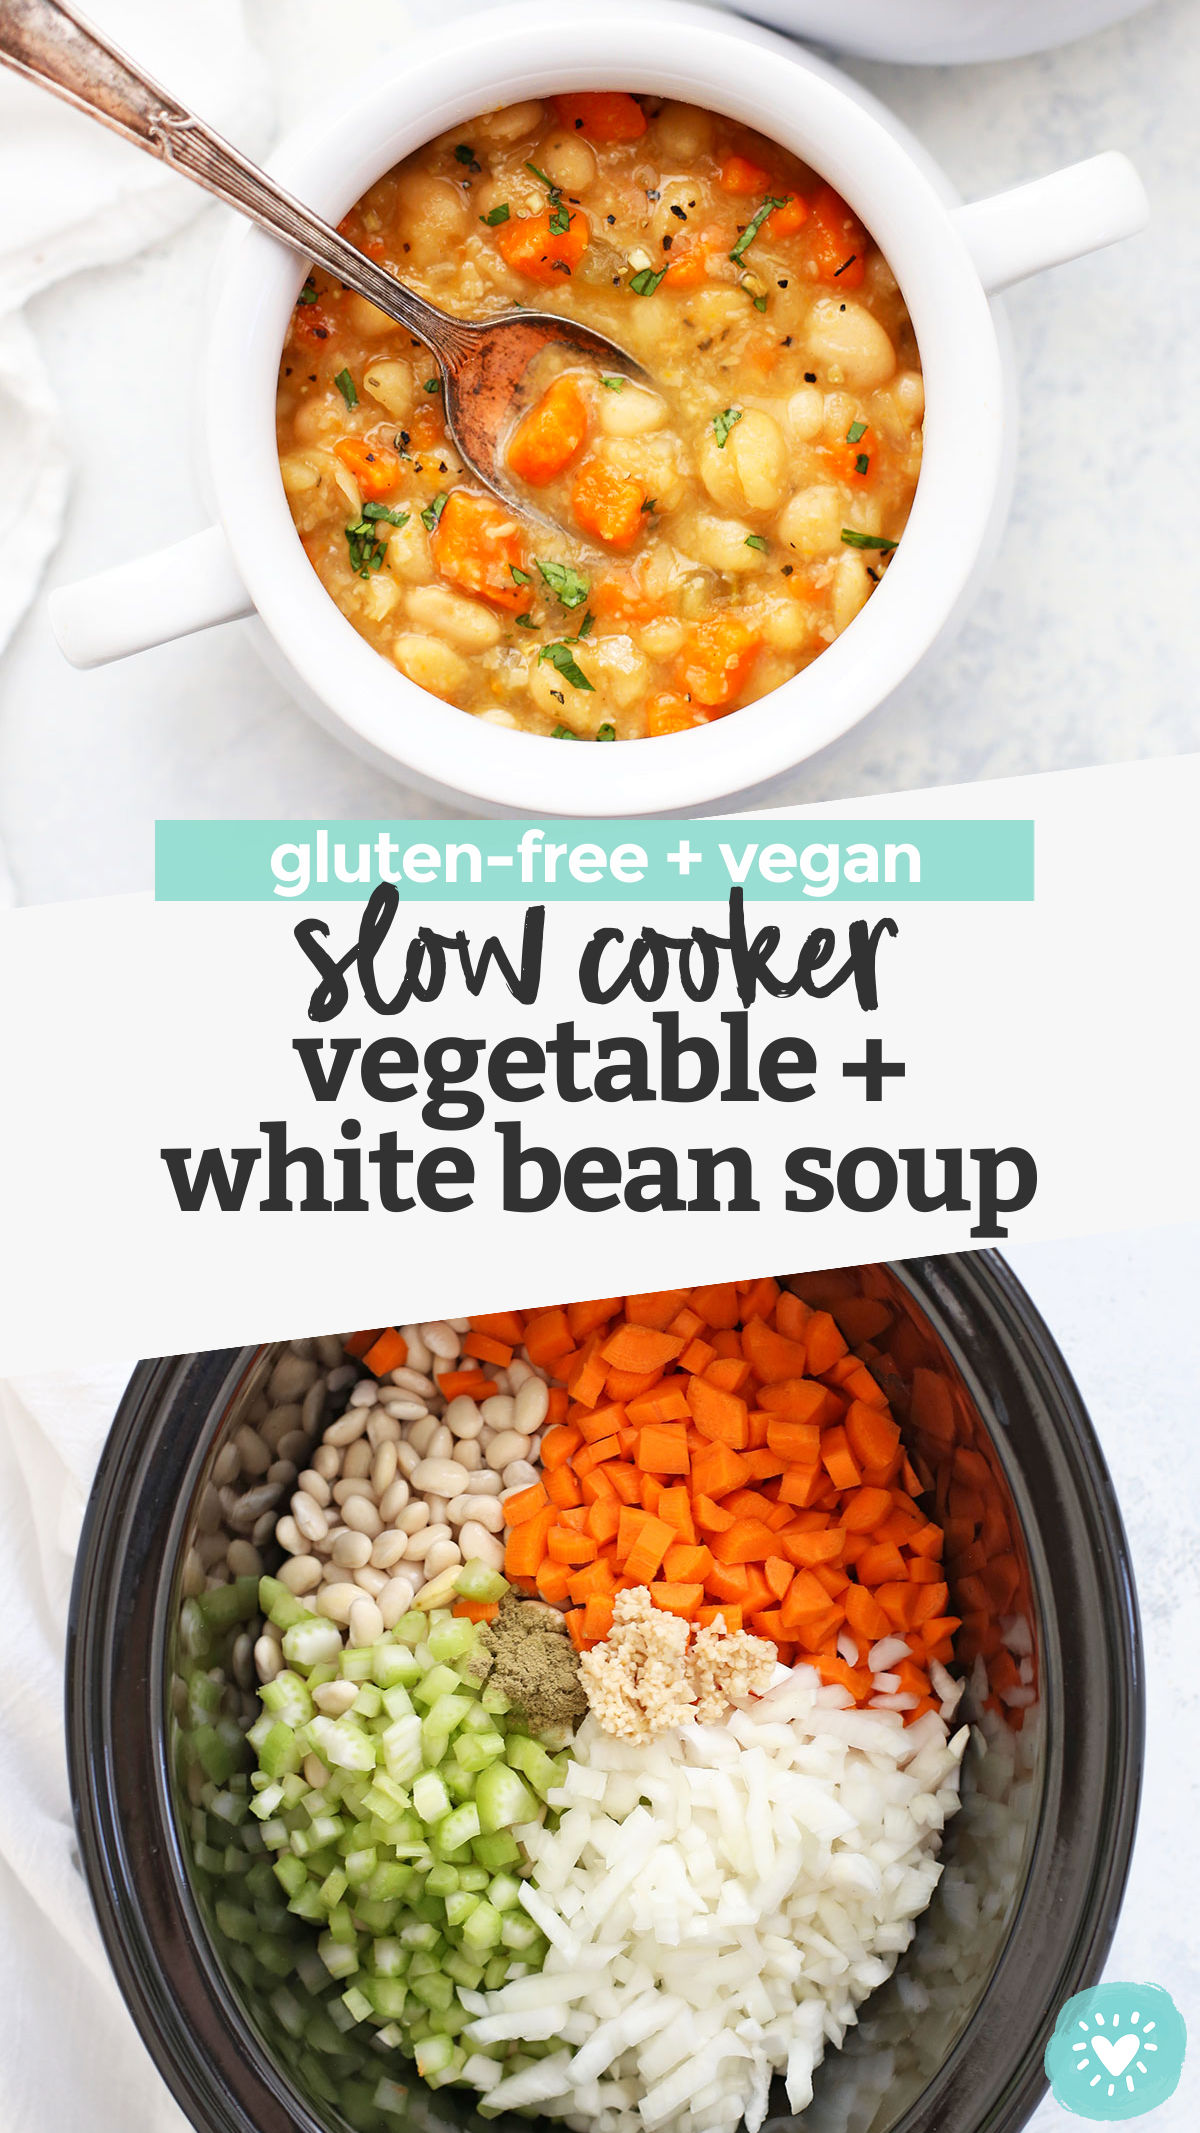 Slow Cooker Vegetable Bean Soup - Sometimes the easiest recipes are the best! This vegetable bean soup is made in a slow cooker and has the perfect cozy blend of flavors. We love this so much! (Gluten Free & Vegan) // Crock Pot Vegetable Bean Soup // Slow Cooker Soup Recipe // Crock Pot Soup Recipe // Vegan Slow Cooker Recipe // Vegetarian Slow Cooker Recipe // Vegan Soup // Vegetarian Soup // Bean Soup